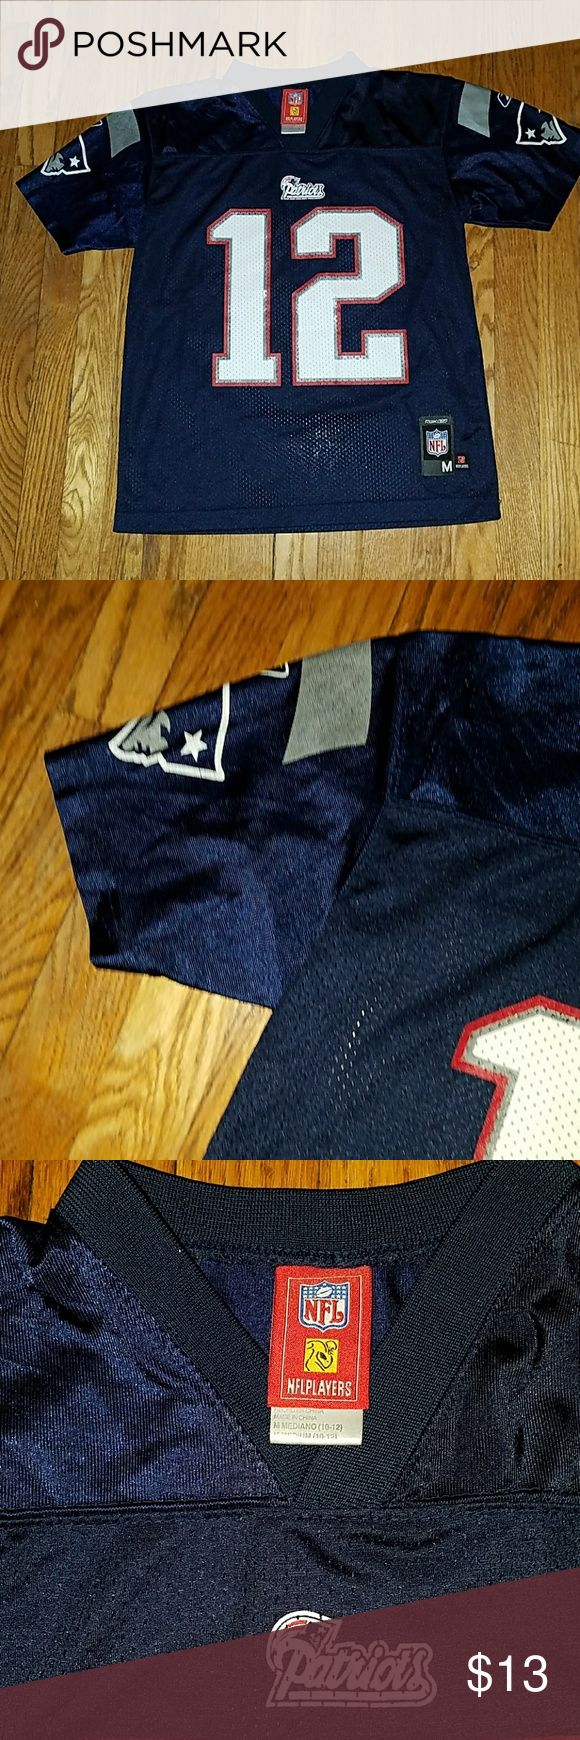 Tom Brady NFL jersey Size is M in kids (10-12) but fits a size S woman. Worn a few times and the some of the name and number is rubbing off. nfl Tops